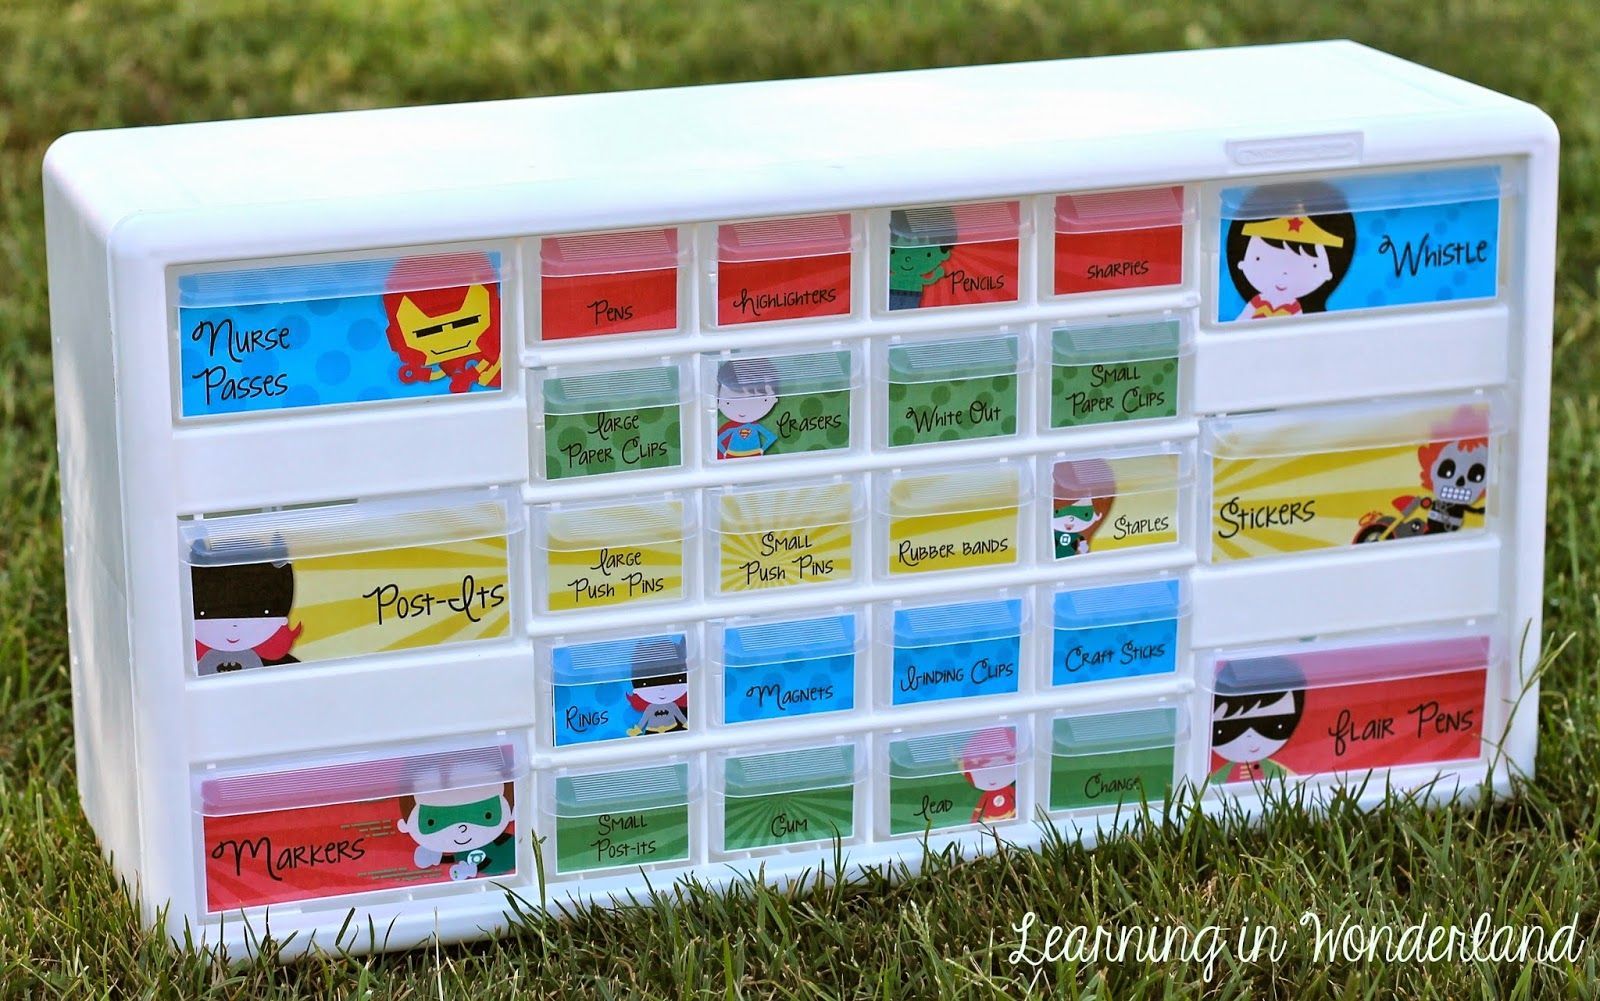 http://www.teacherspayteachers.com/Product/Im-Super-Organized-Super-Hero-Edition-Teacher-Toolbox-and-More-1288243